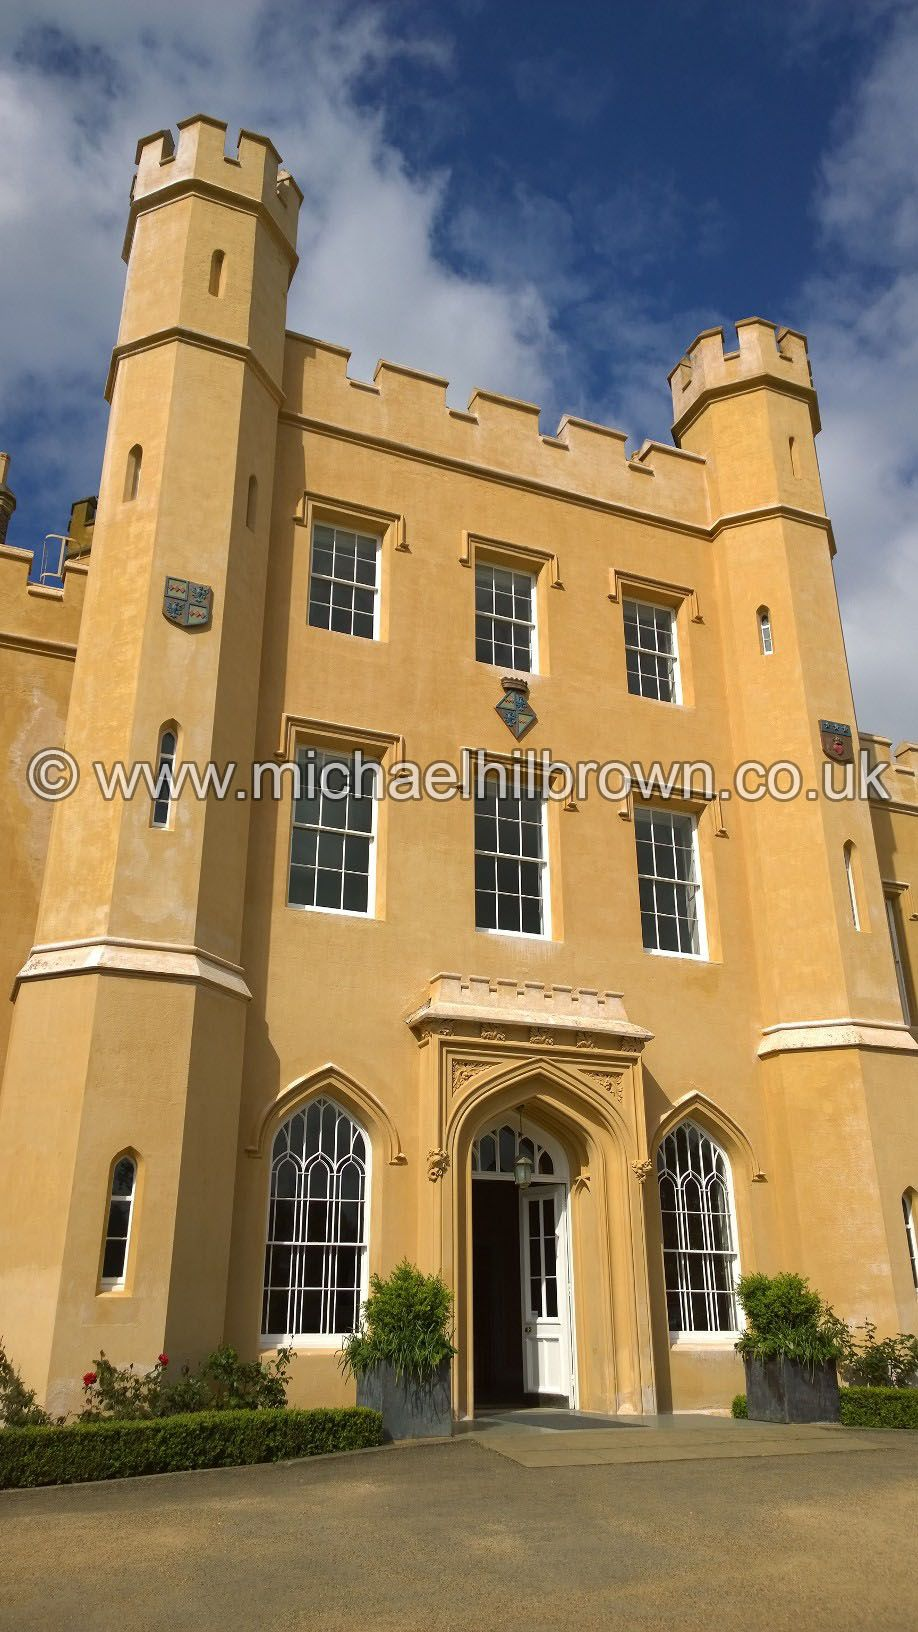 Front view of Ditton Manor - A fairytale wedding venue ...